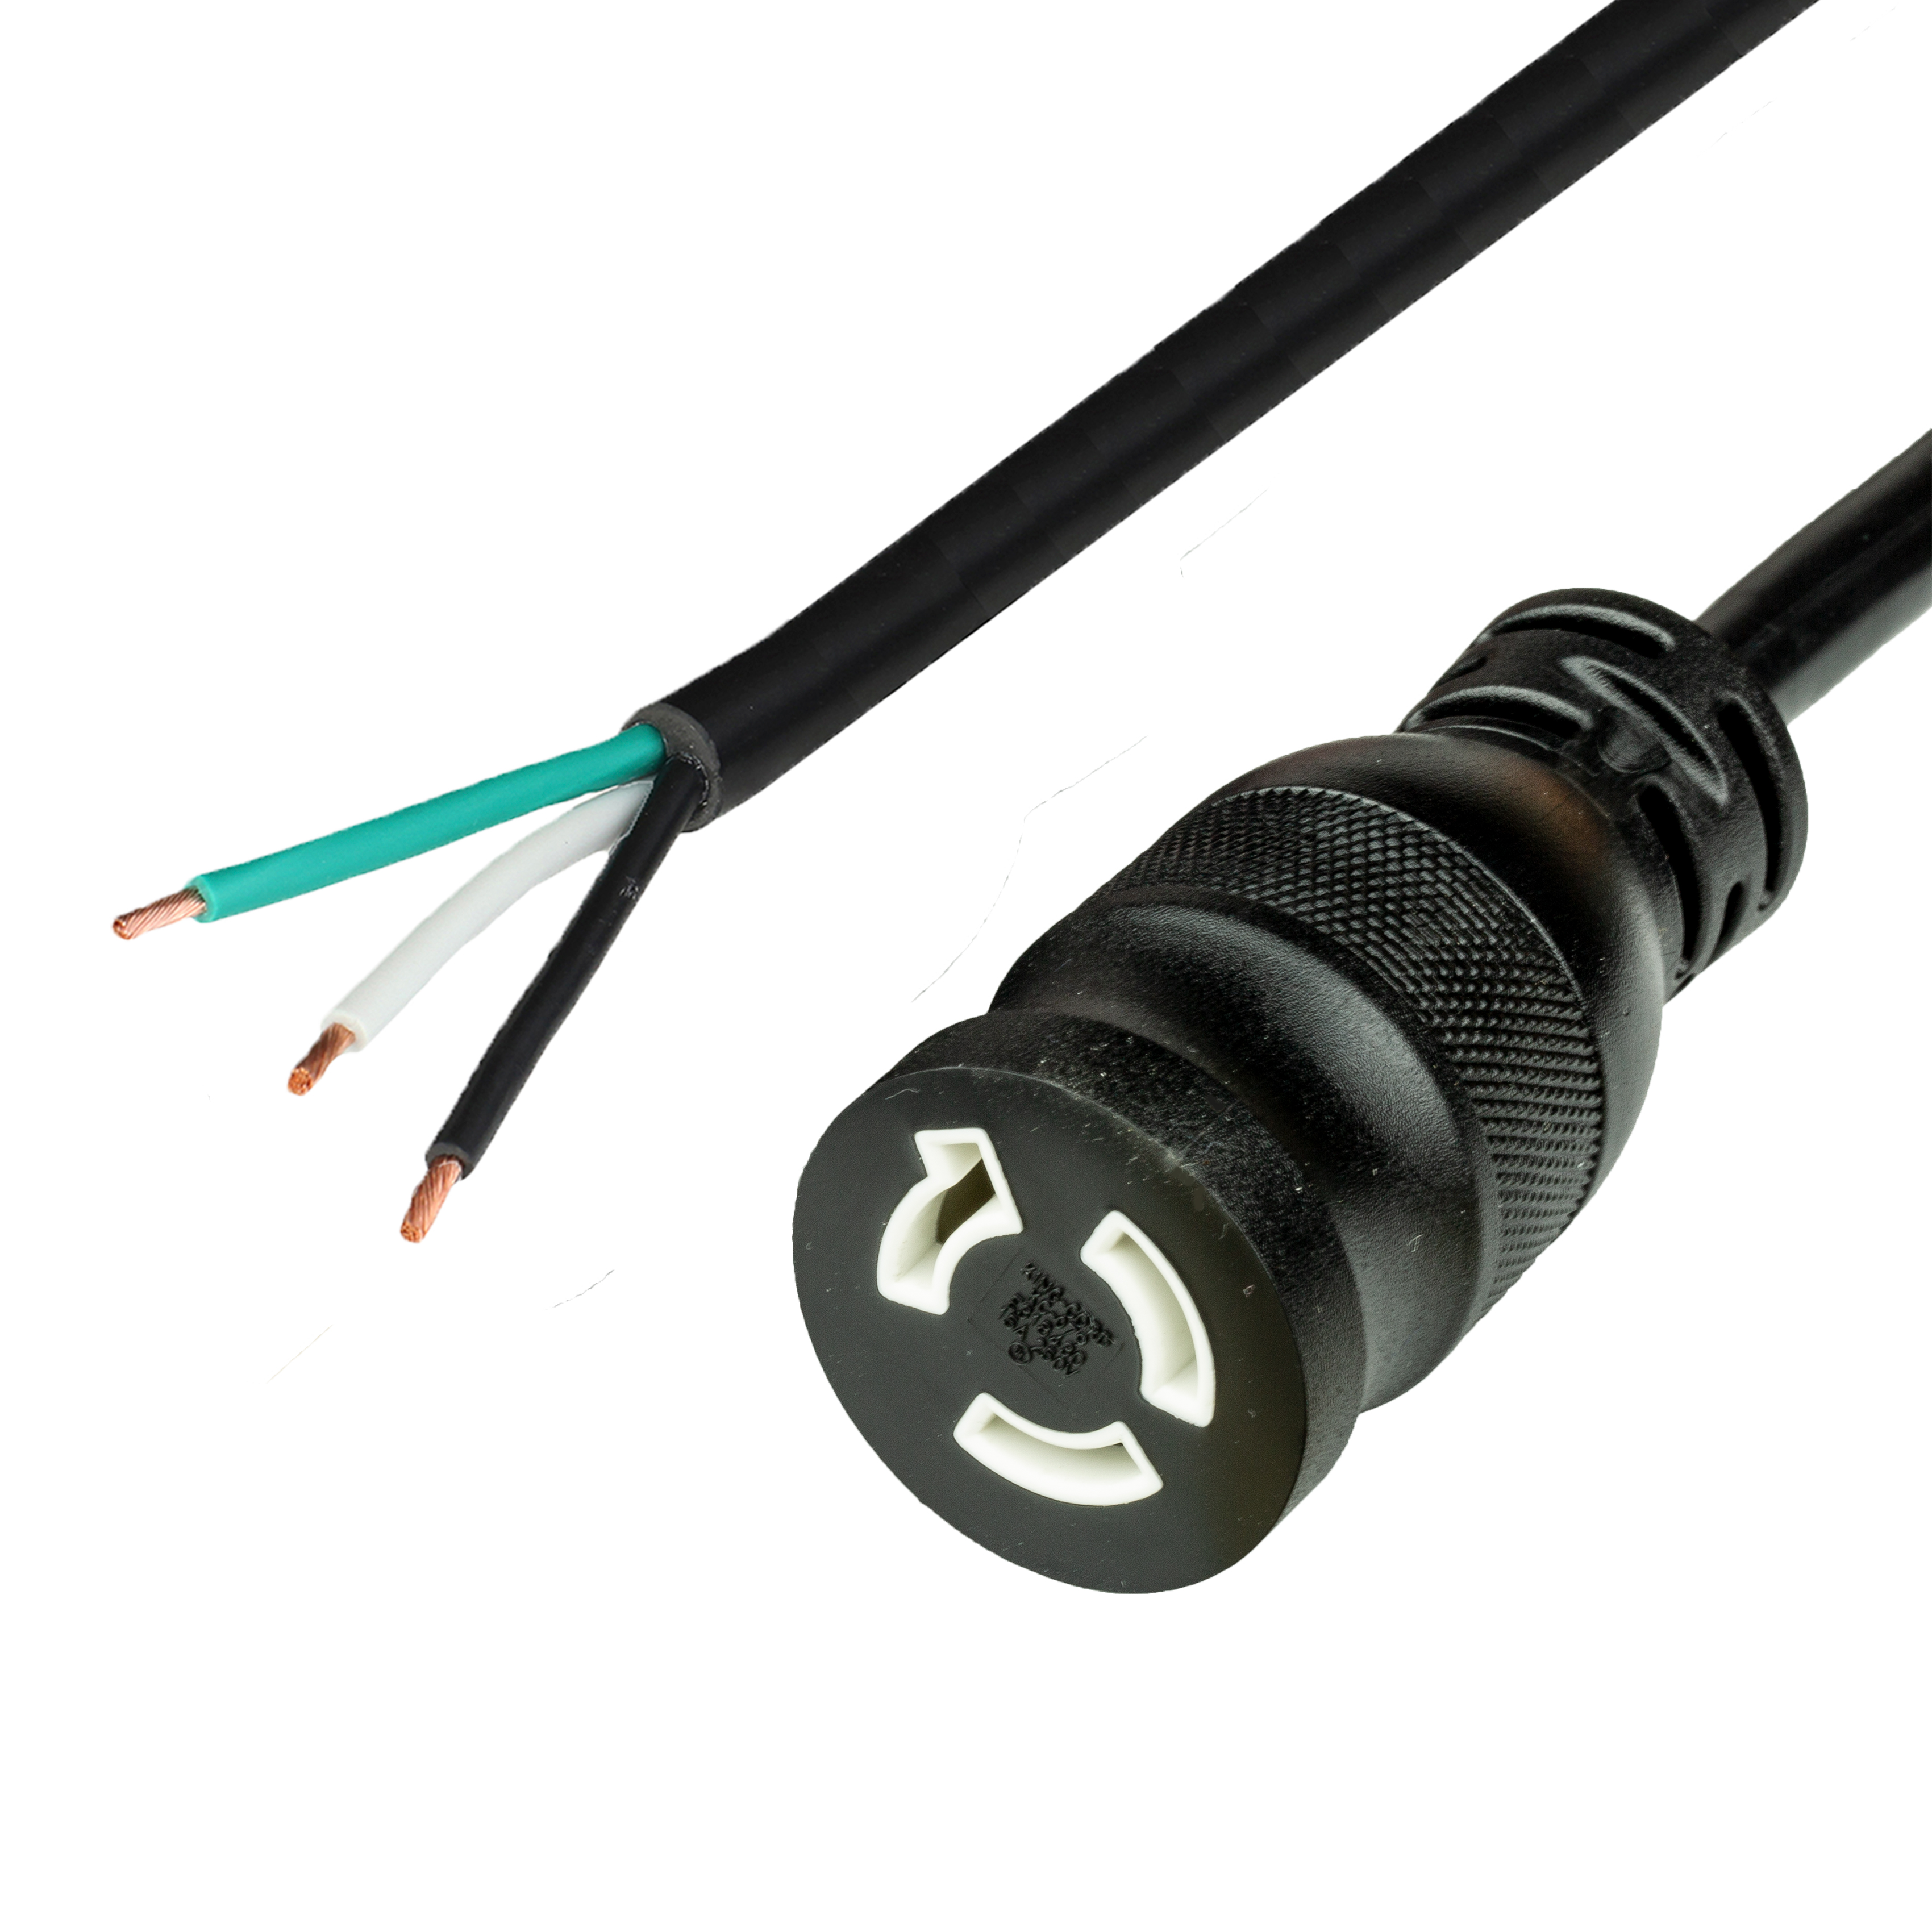 1FT OPEN 2in (ROJ + 0.25in Strip) to NEMA L6-15R (female twist lock) 15A 250V 14awg-3c SJTOW 105c Power Cord - BLACK